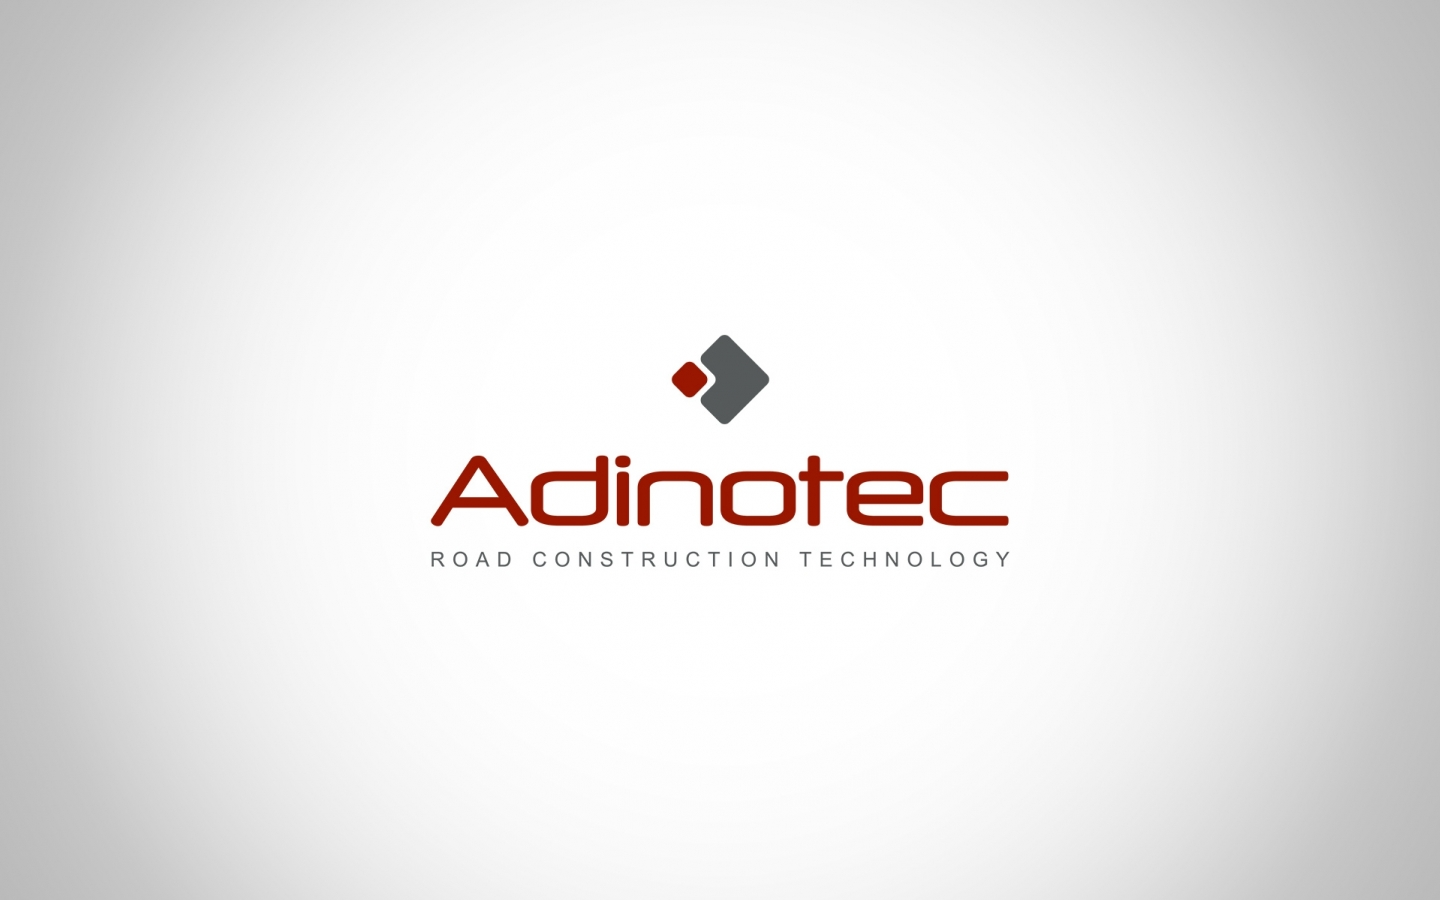 Adinotec Branding Project by Crevisio